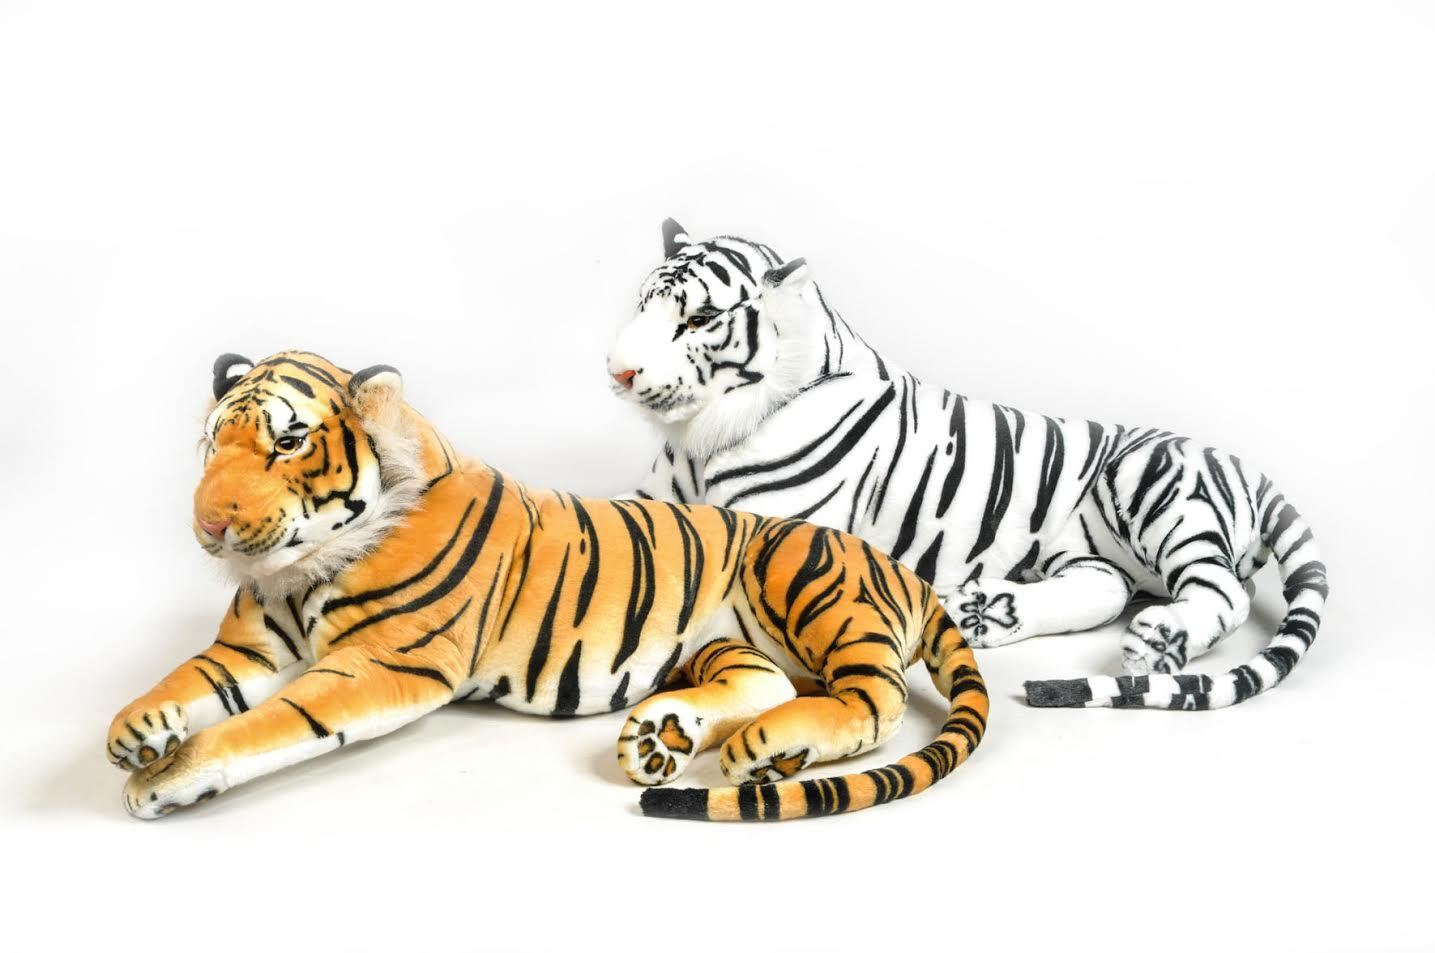 Grand Tiger White in plush 135 cm elongated quality Very soft and Realistic